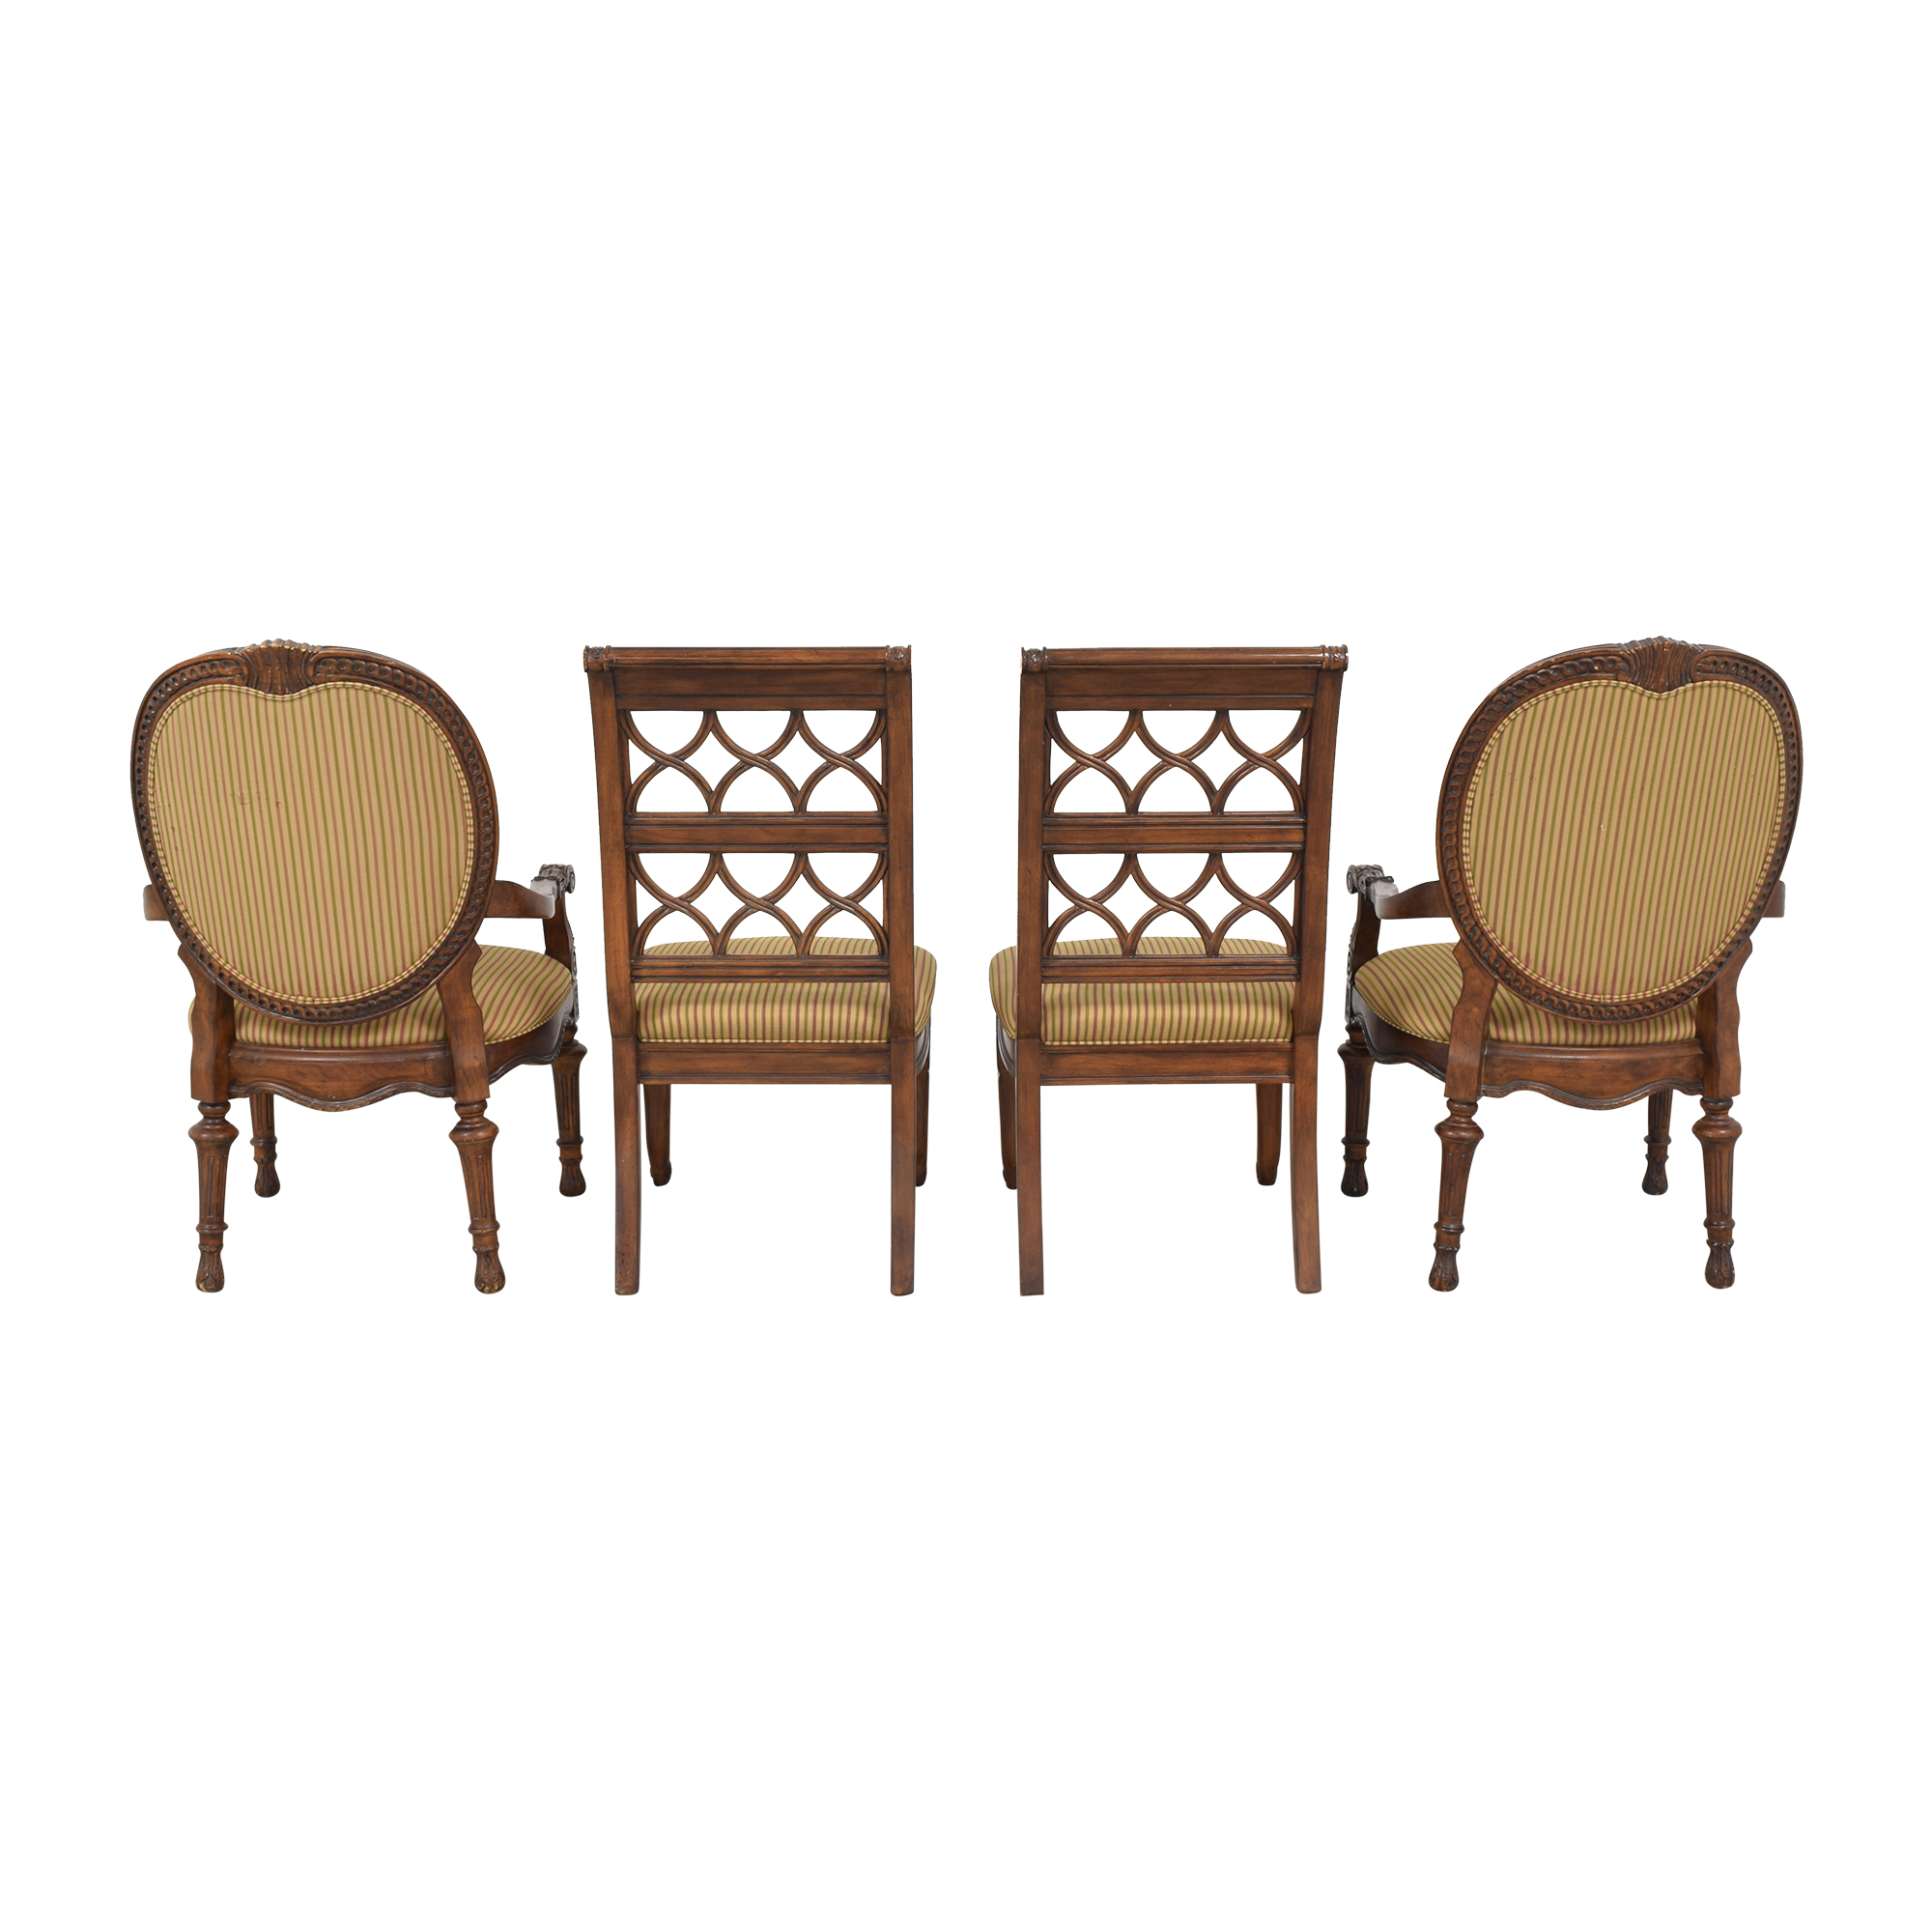 buy Drexel Heritage Dining Chairs Drexel Heritage Chairs